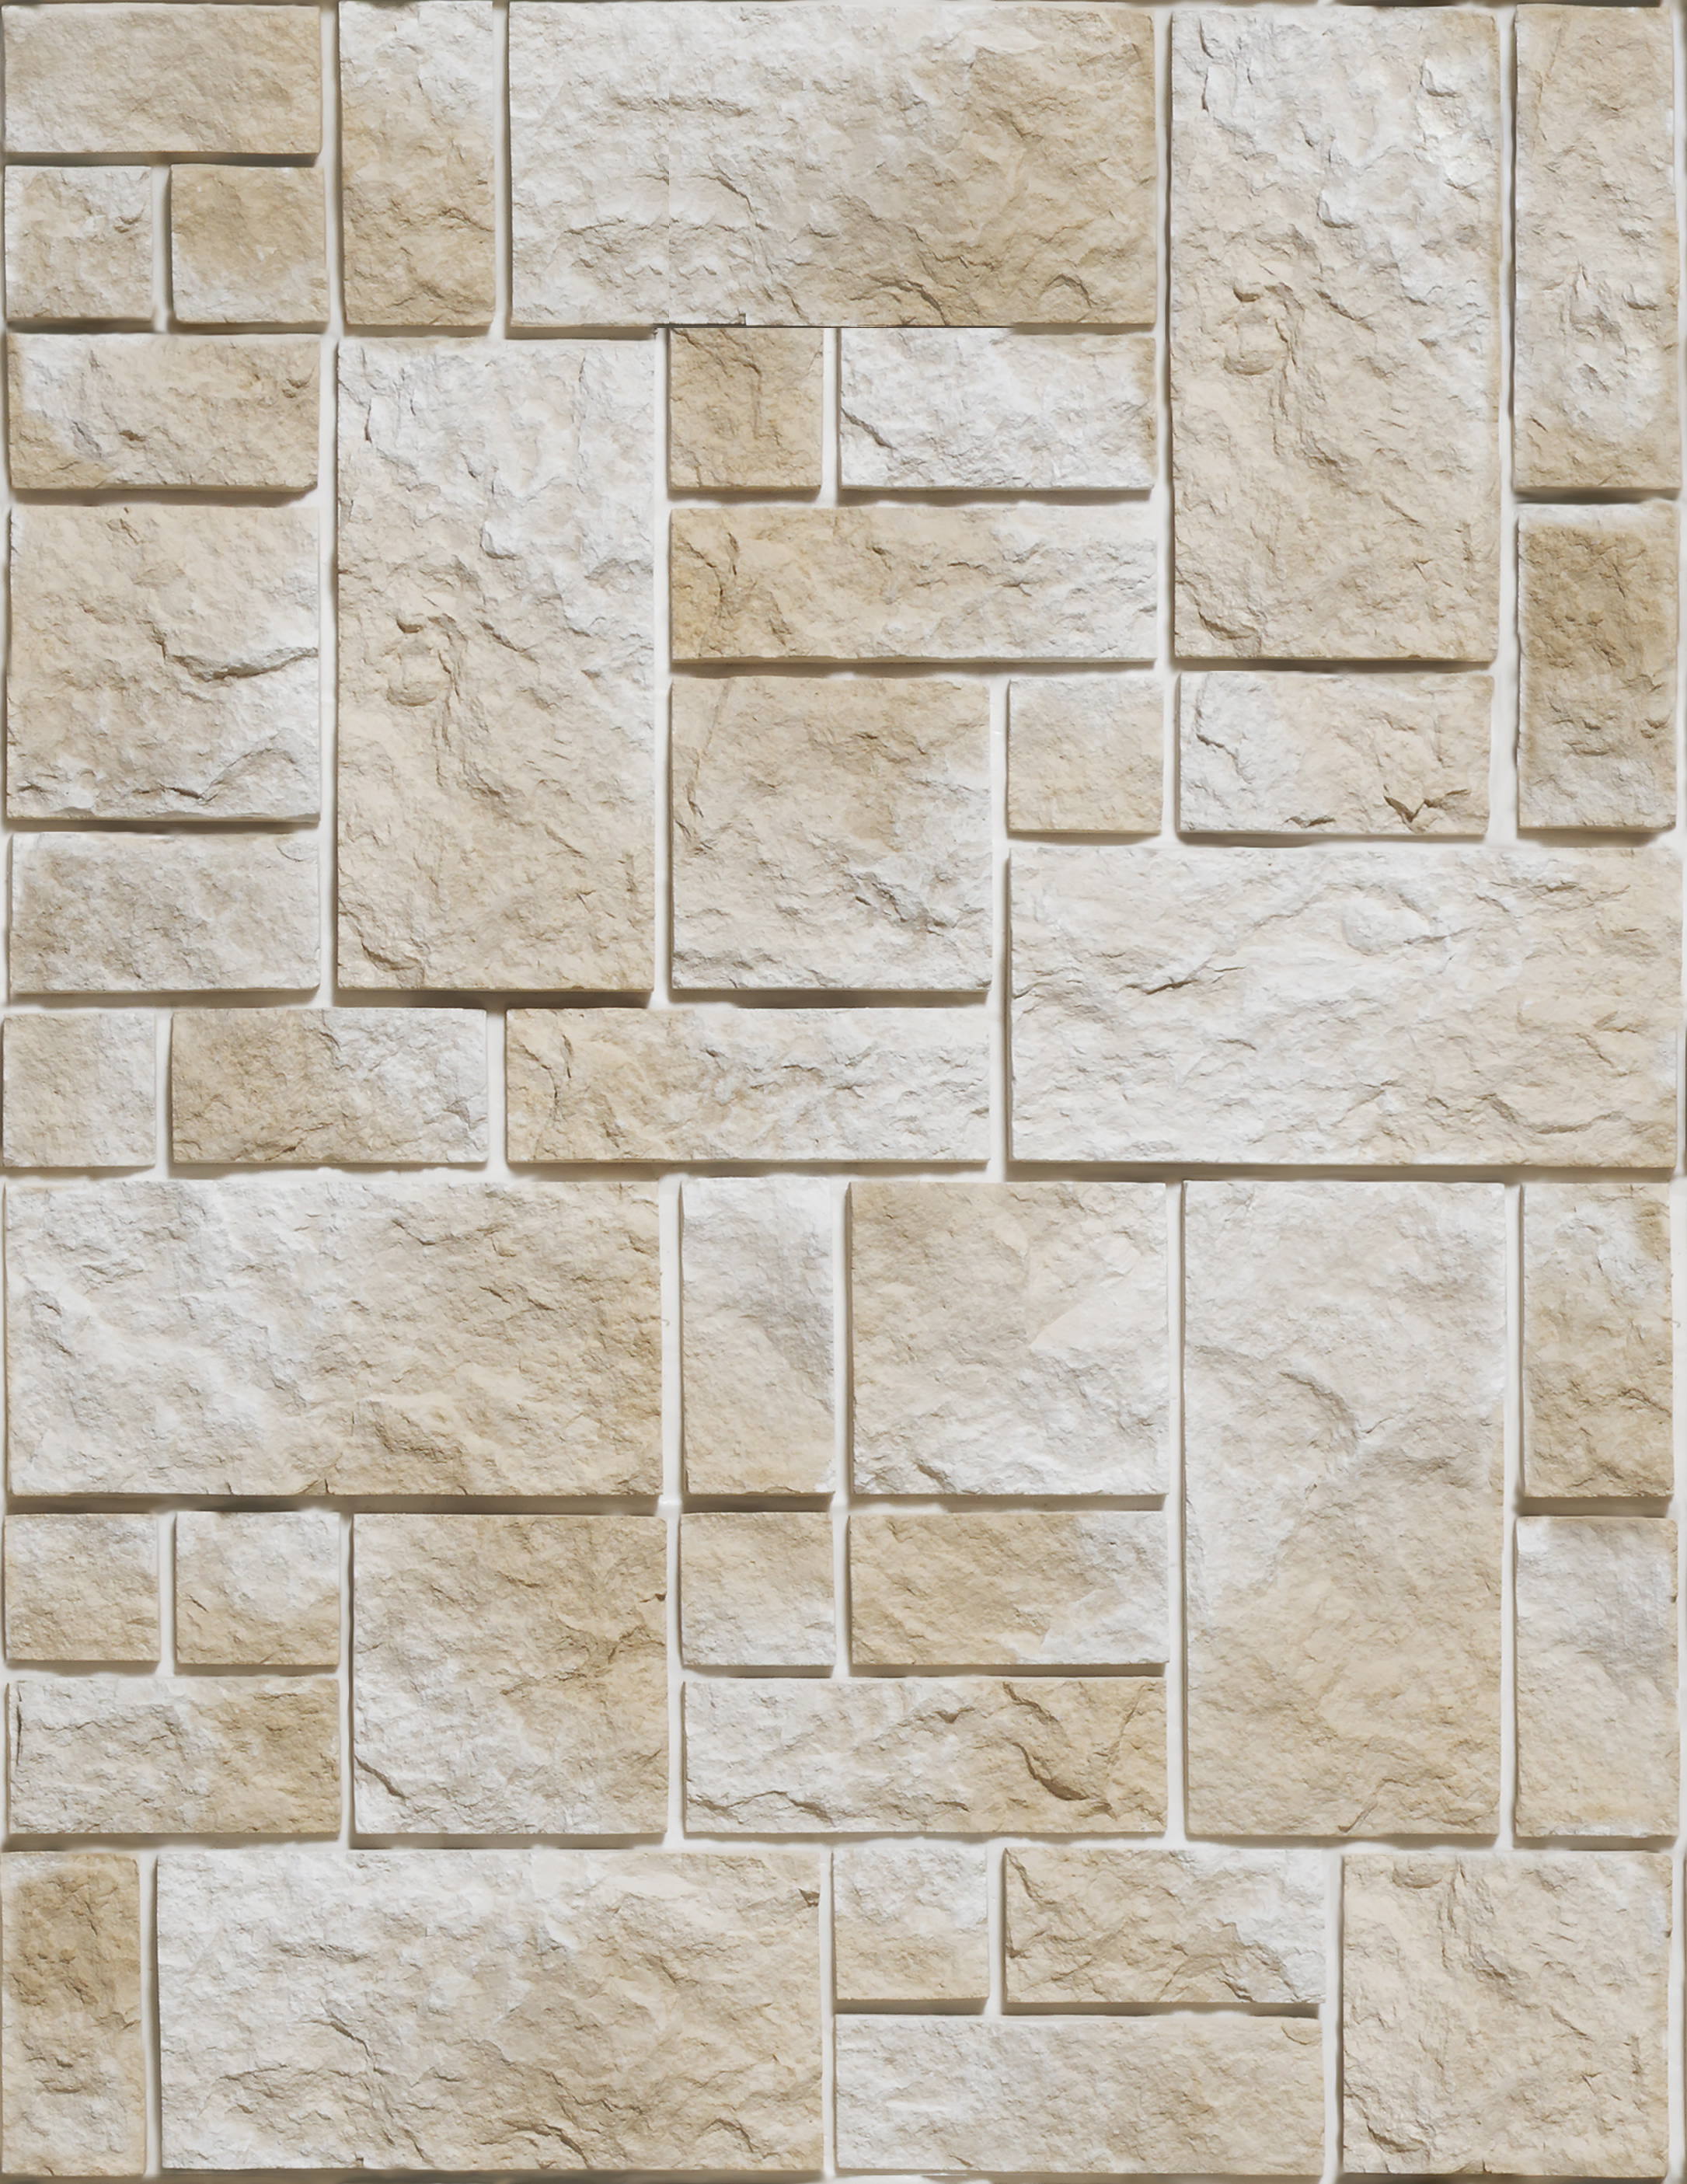 Stone hewn tile texture wall download photo stone texture for Exterior wall tiles design india